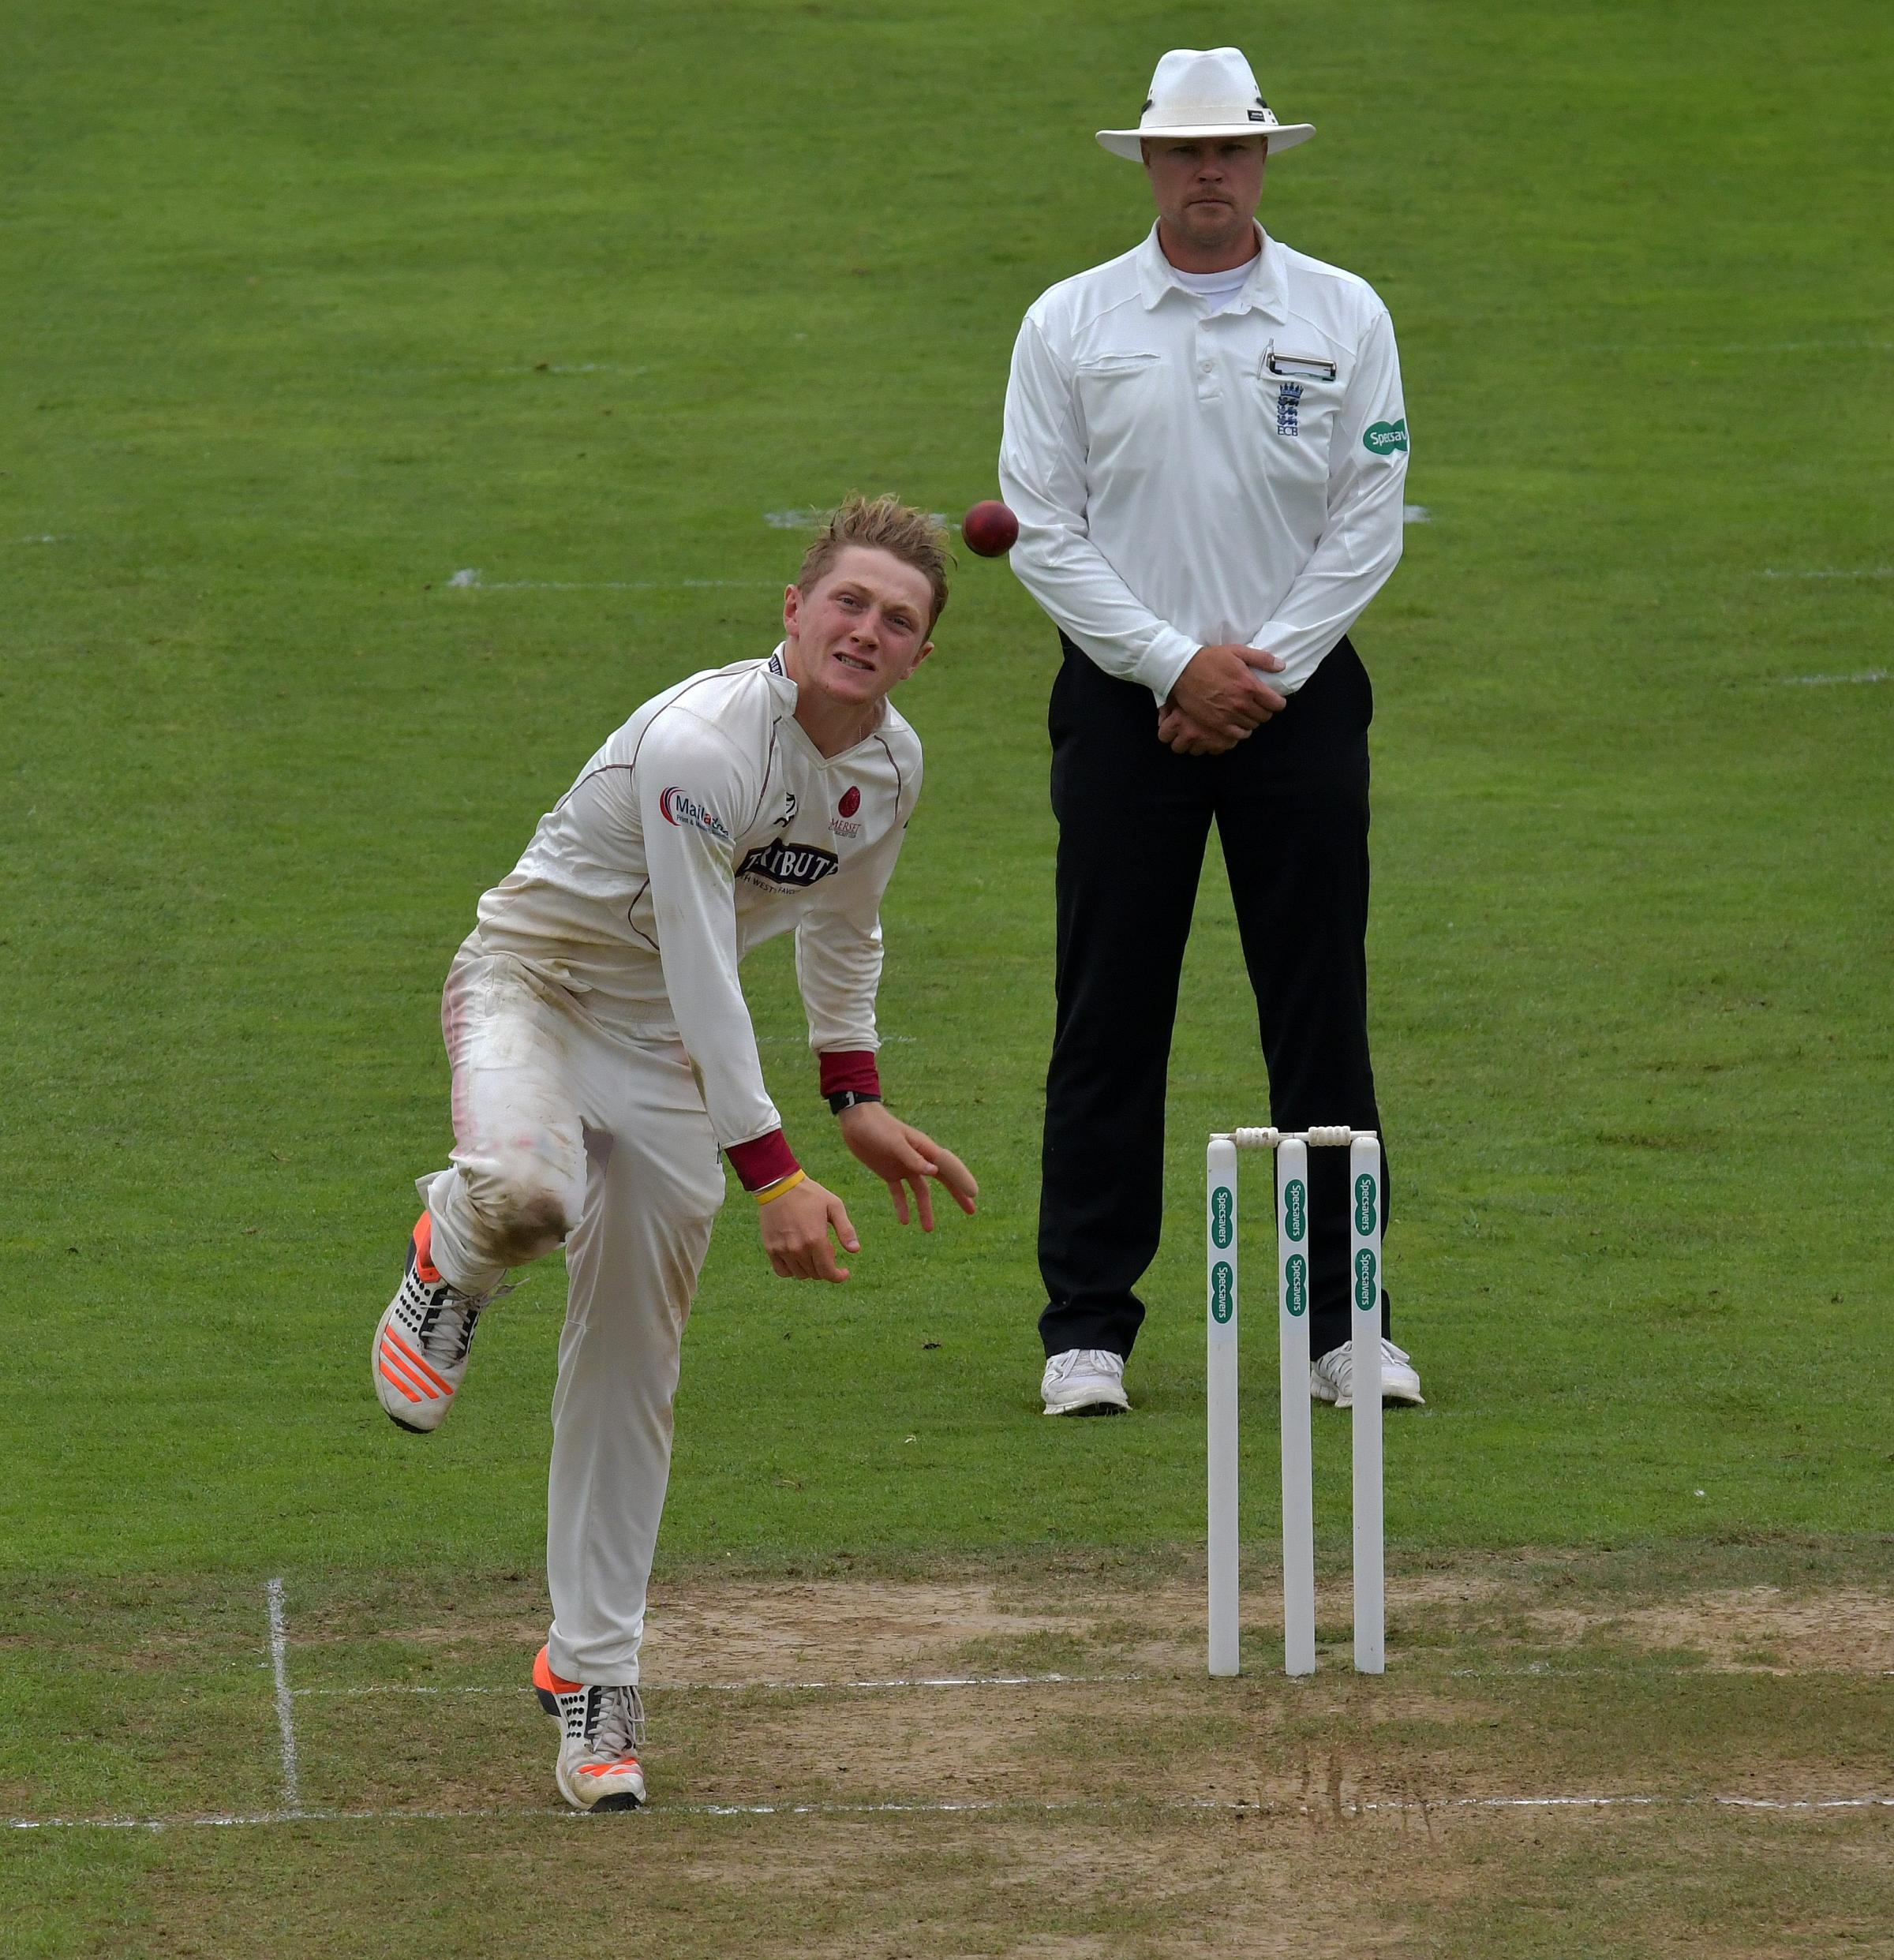 BREAKTHROUGH: Dom Bess picked up the key wicket of Dawid Malan on day three of Somerset's match with Middlesex in Taunton.